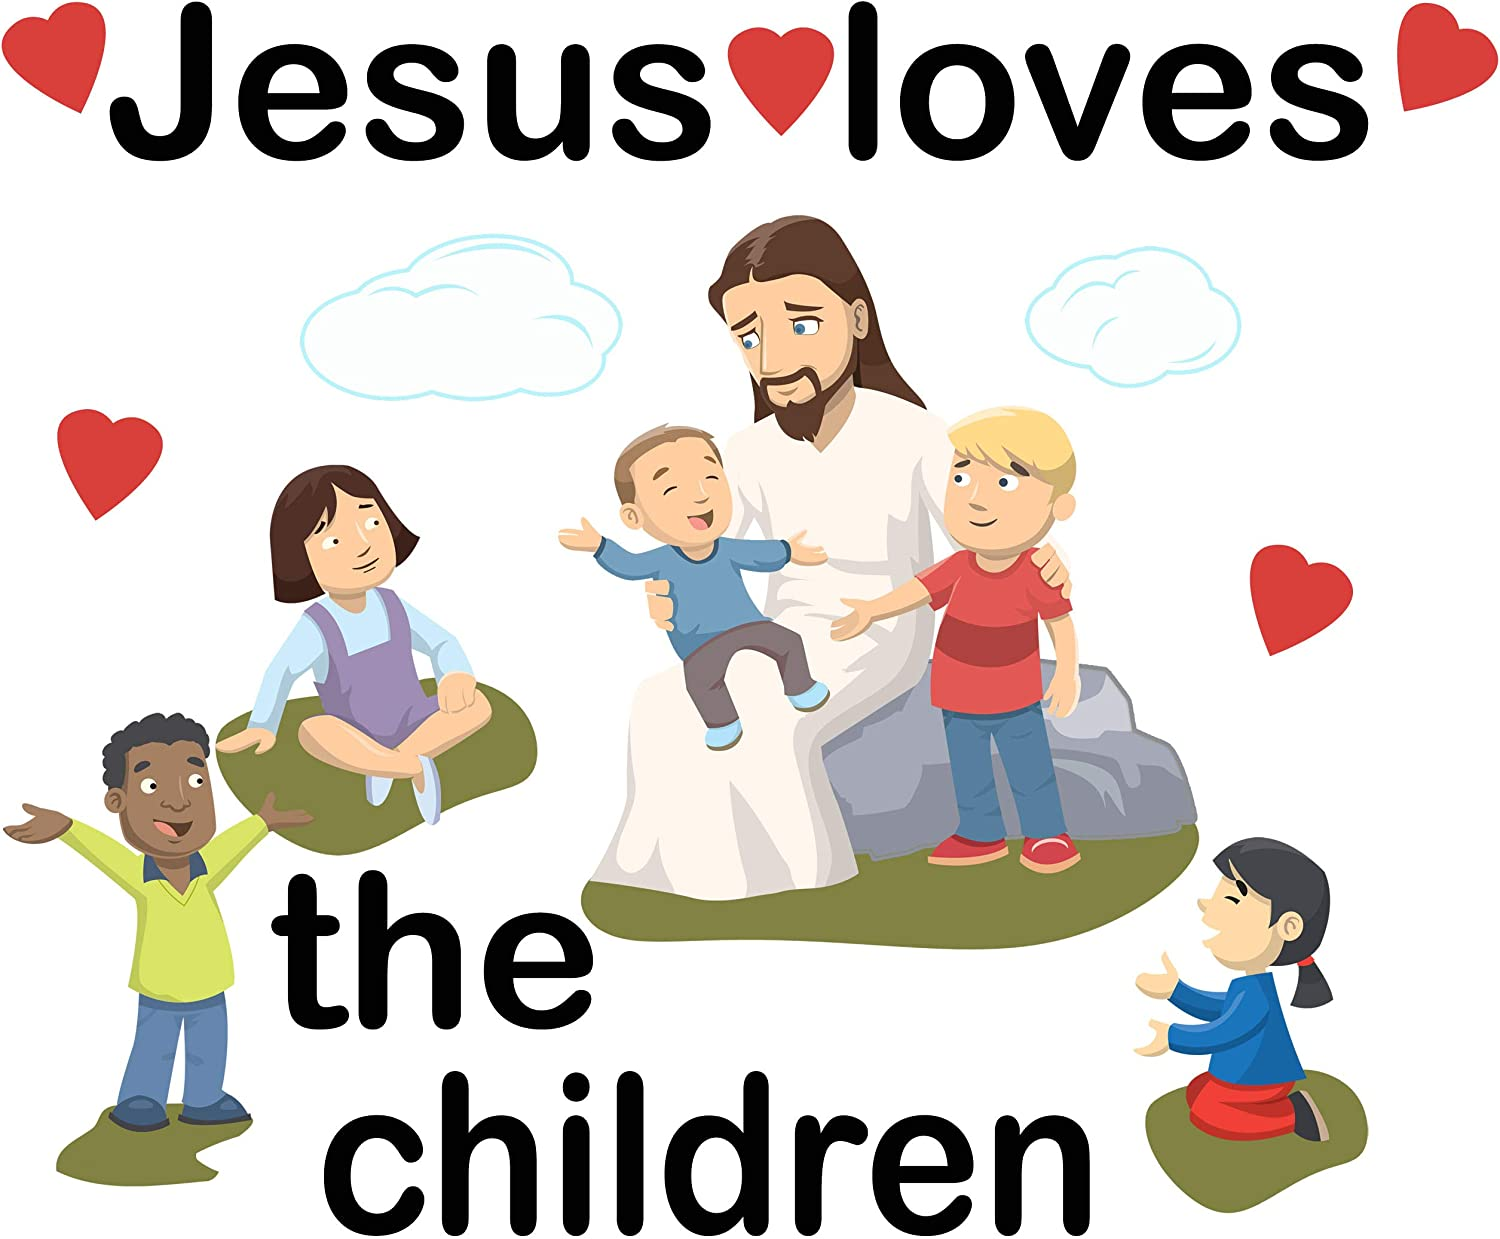 Amazon Com Create A Mural Jesus Loves The Children Wall Decals For Church Classroom Decoration Nursery Art Decor Stickers Christian Bible Verse Kids Ministry Room Vinyl Peel N Stick Home Kitchen